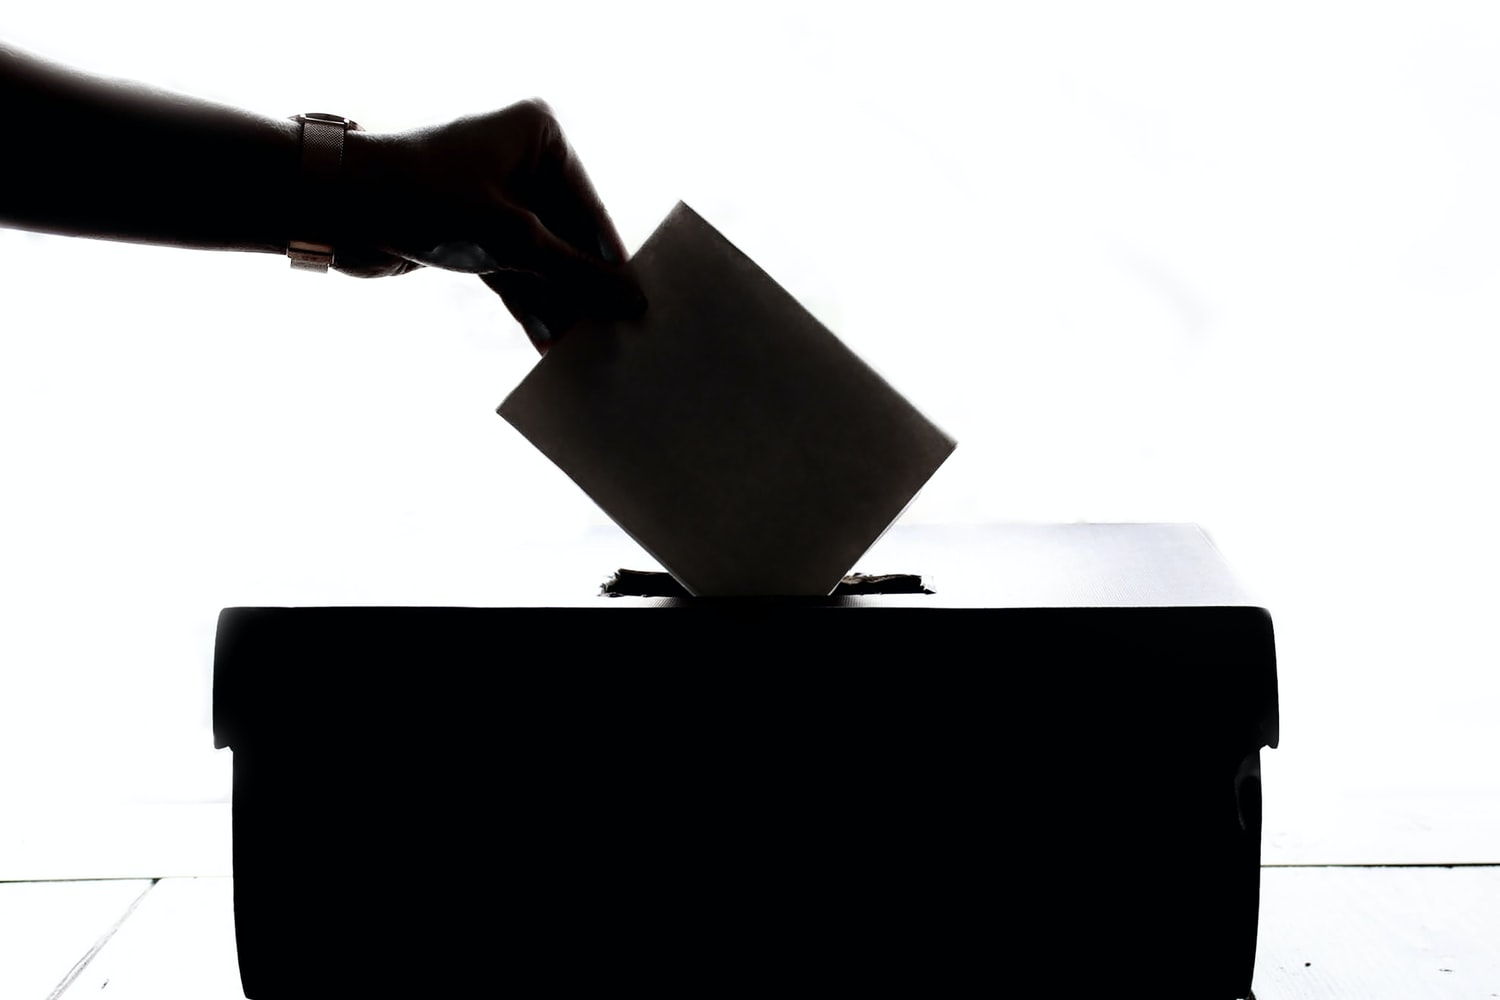 Democracy swims against the tide in authoritarian world